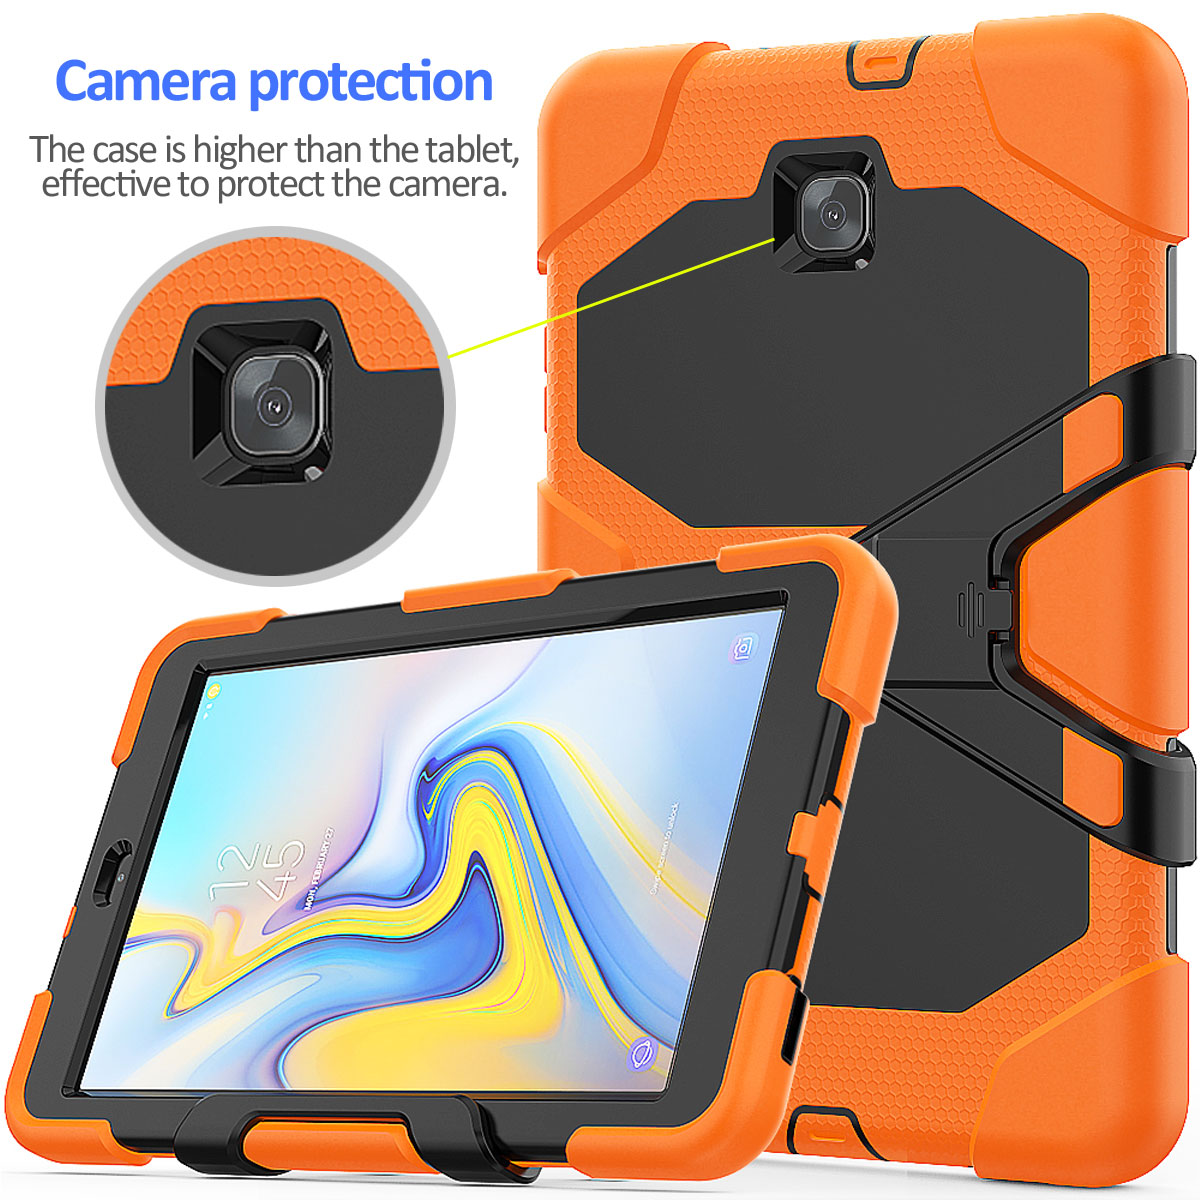 Rugged-Hard-Case-For-Samsung-Galaxy-Tab-A-8-0-2018-SM-T387-with-Screen-Protector thumbnail 44